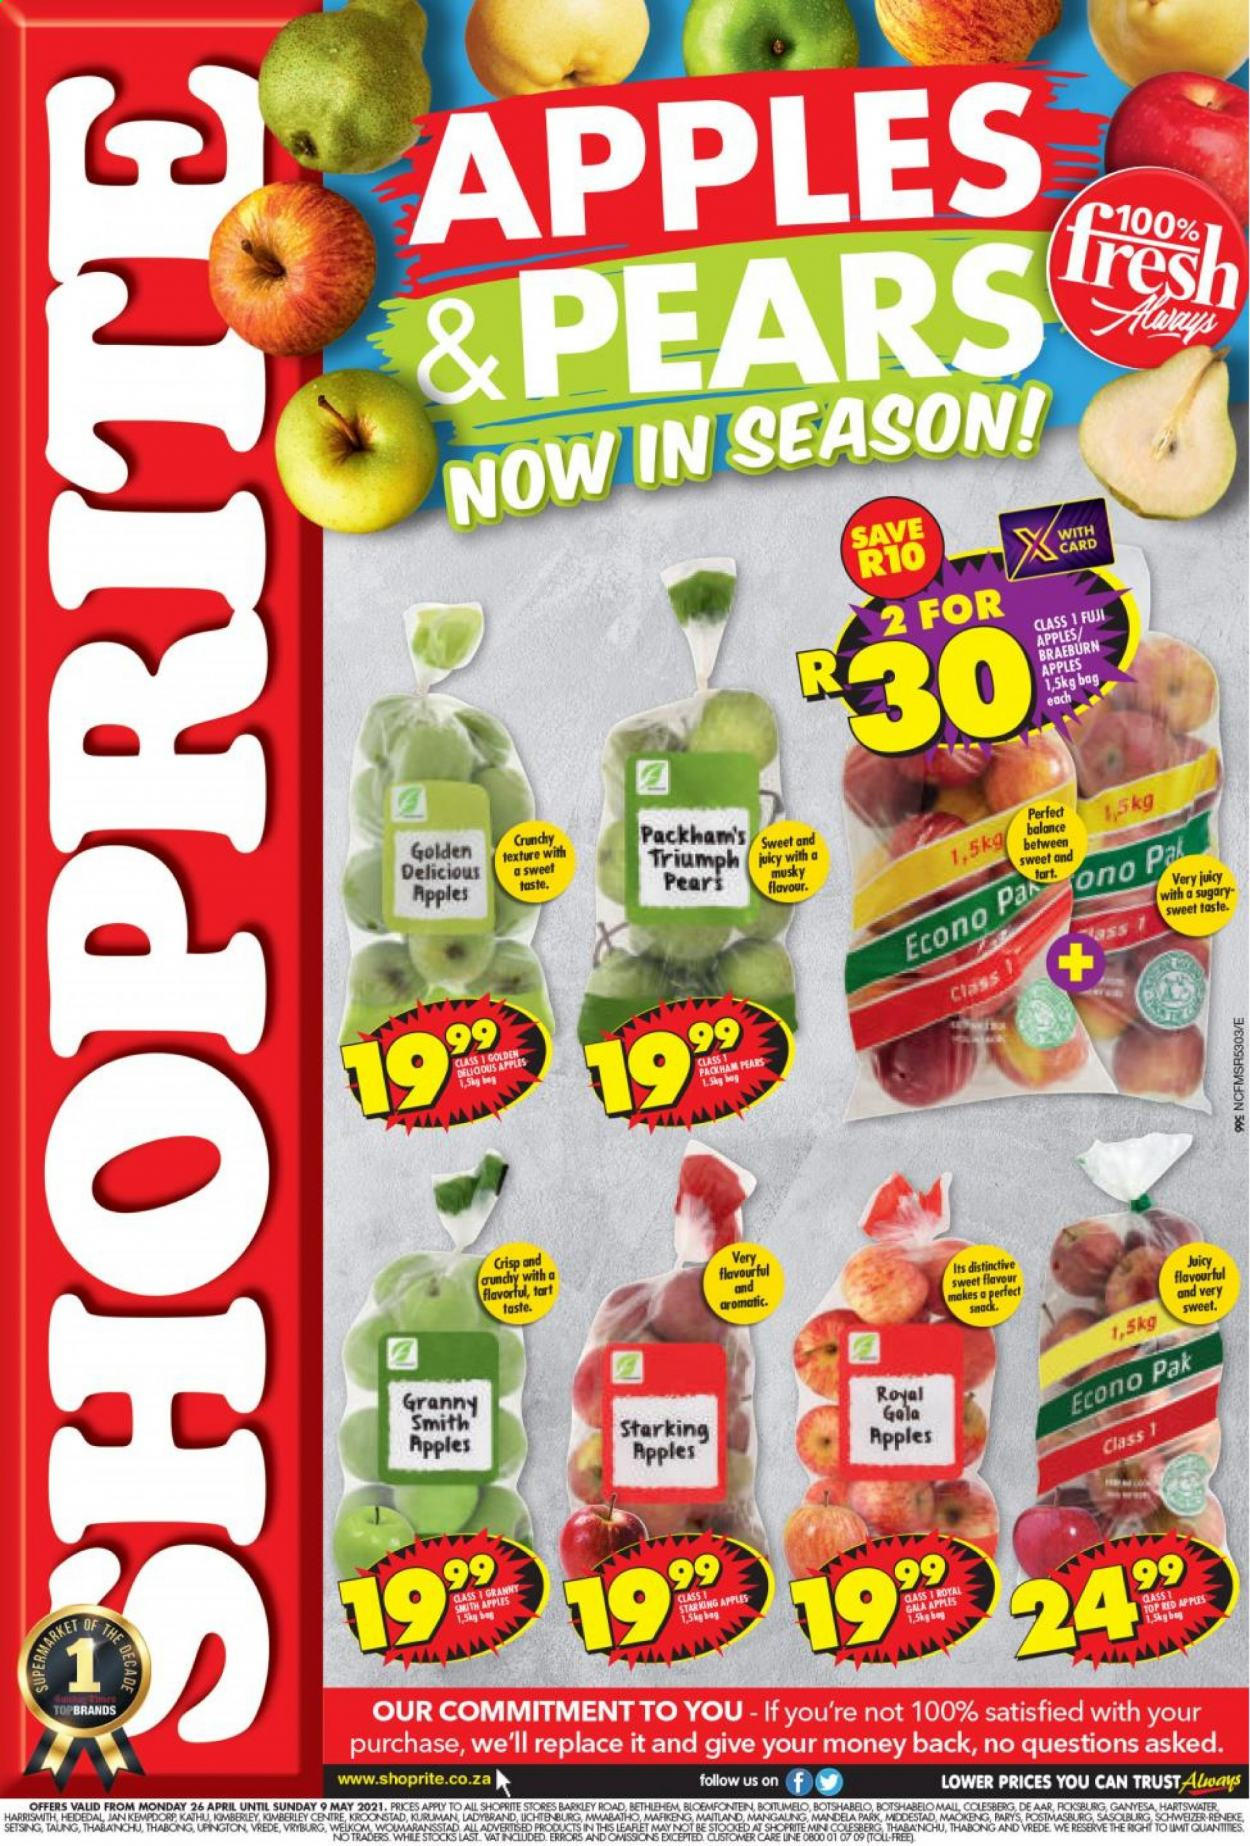 Shoprite catalogue  - 04.26.2021 - 05.09.2021 - Sales products - tart, Gala apple, pears, Golden Delicious apple, Fuji apple, apples, Granny Smith apple, snack, bag. Page 1.